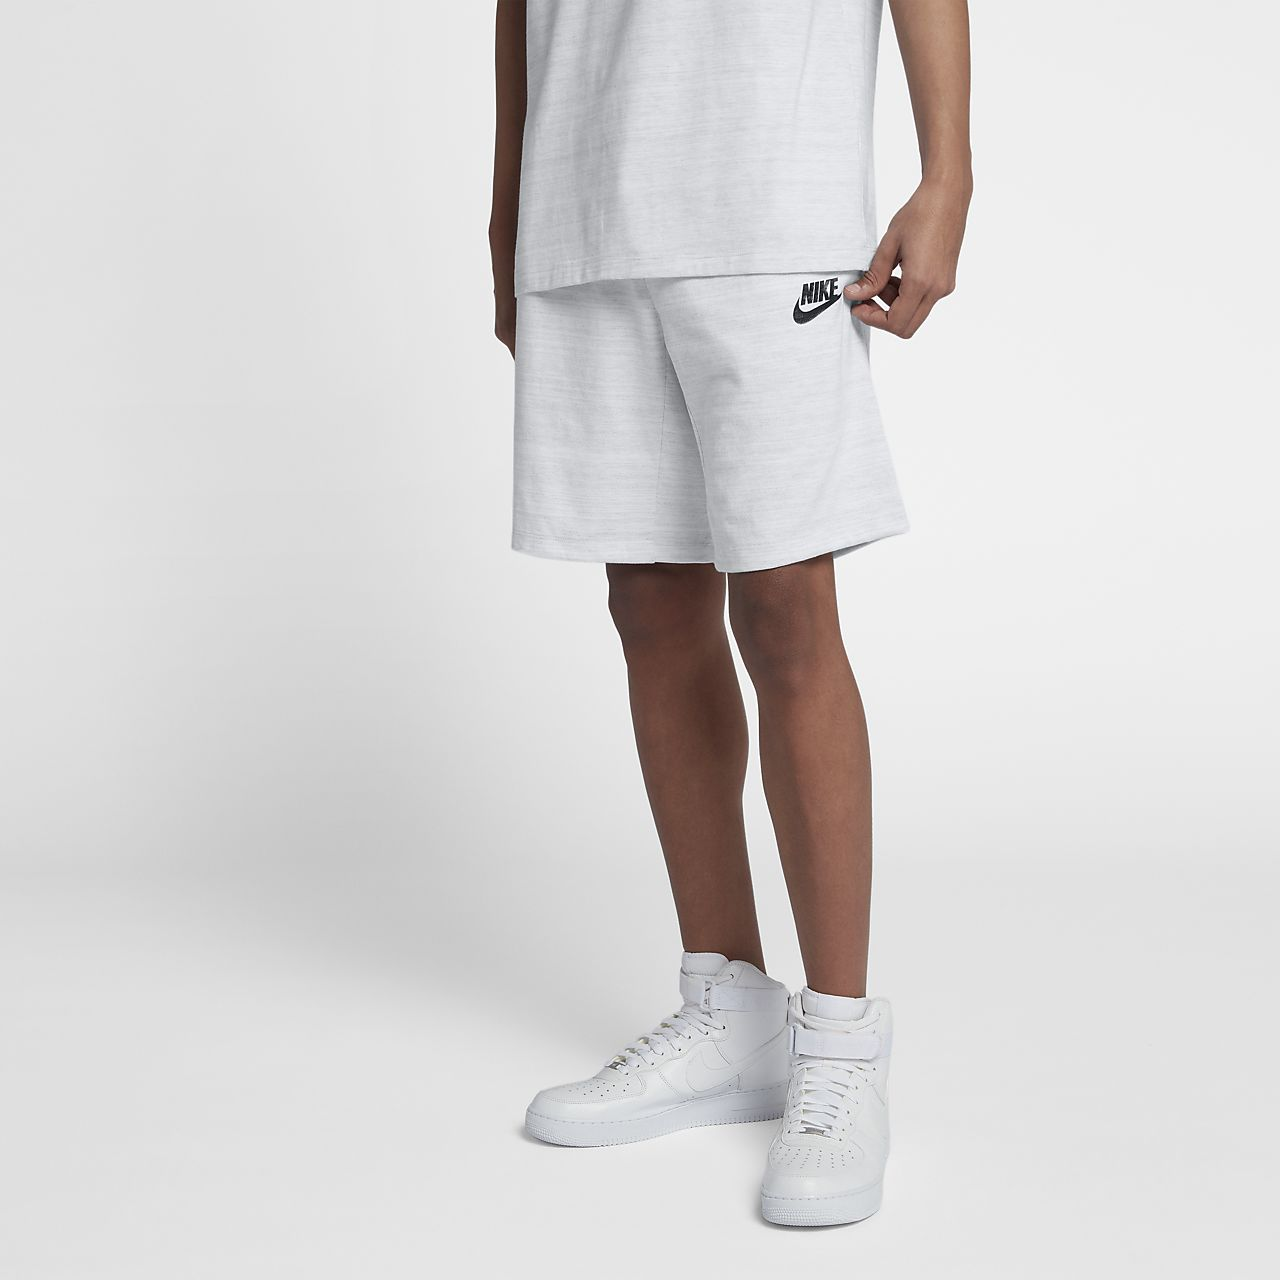 da82556f Nike Sportswear Advance 15 Men's Knit Shorts. Nike.com CA